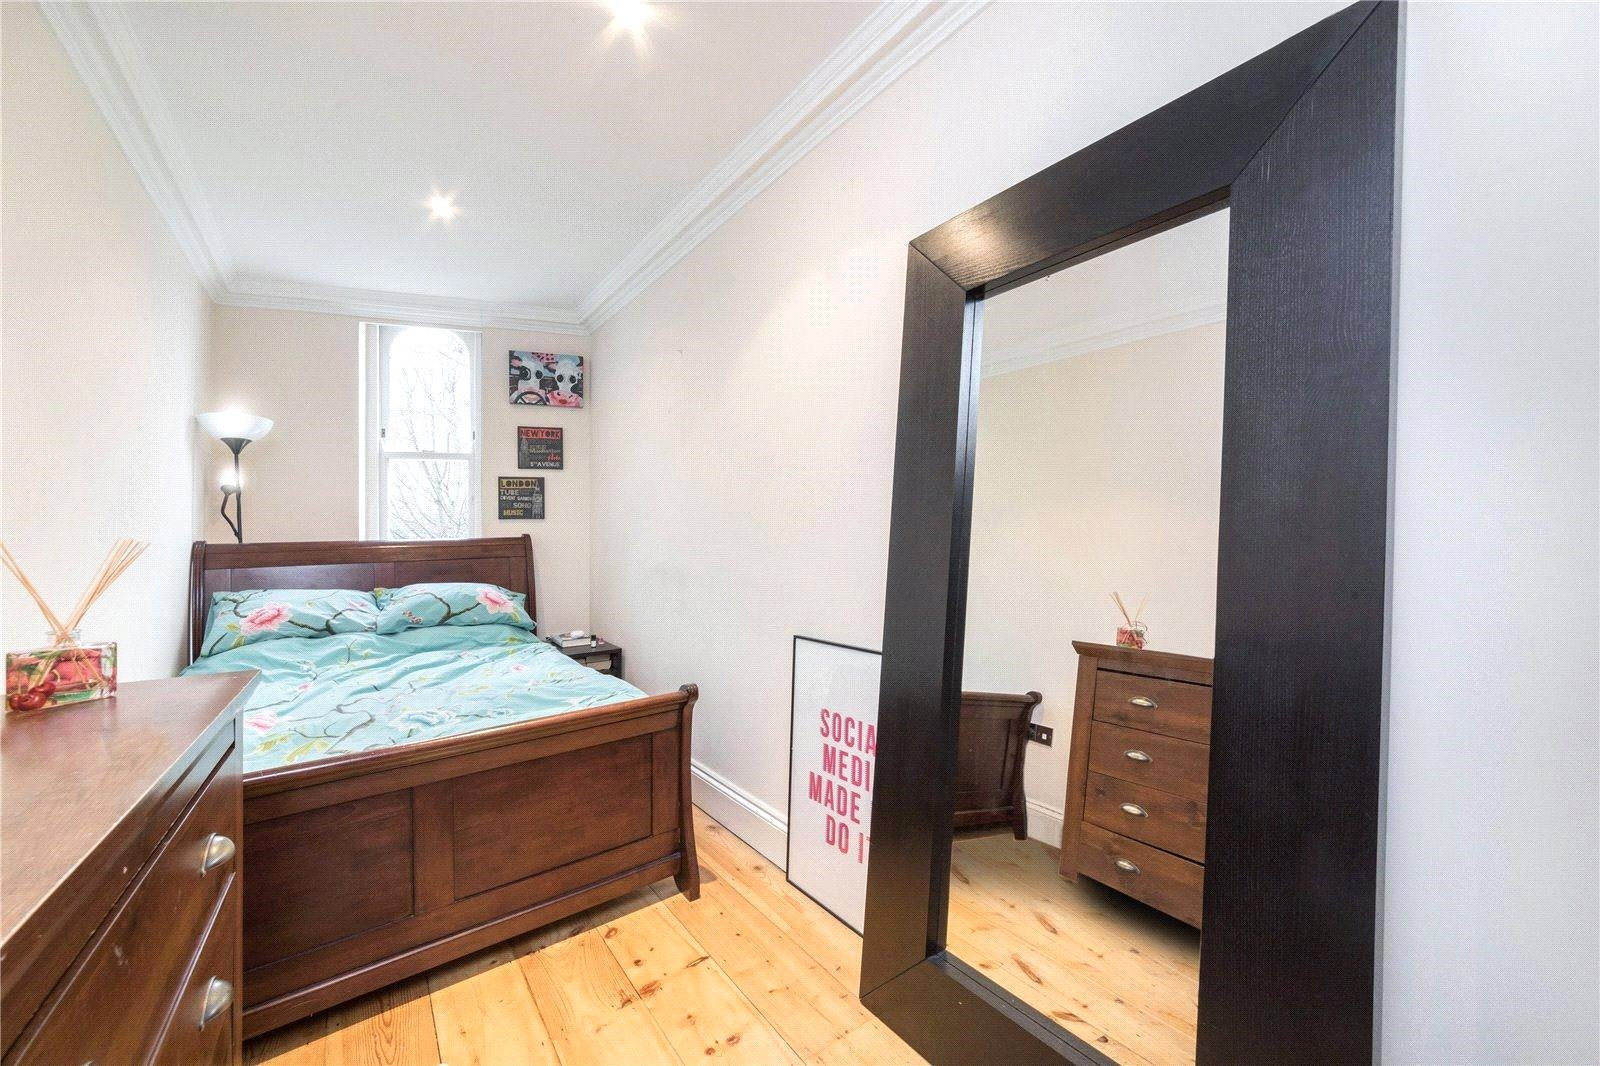 2 bed apartment to rent in Arsenal, N5 1LU 2